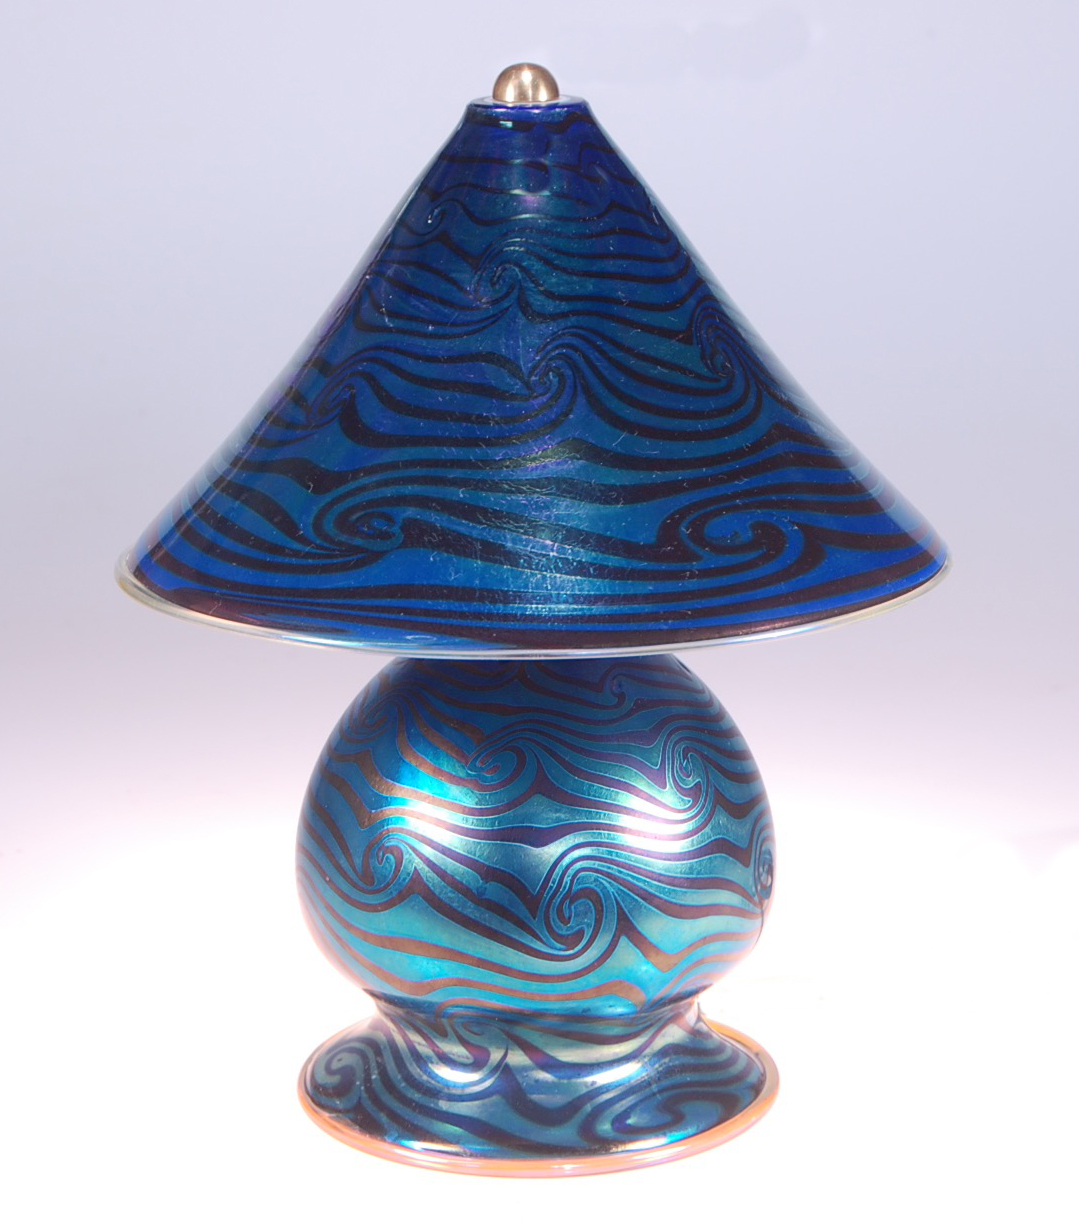 """Blue Luster Gem Lamp, 9.5"""" wide x 12"""" tall, Hand decorated Wave pattern, Illuminated within base and canopy, 110v. candelabra sockets and bulbs. For Sale. strini art glass. 2016"""